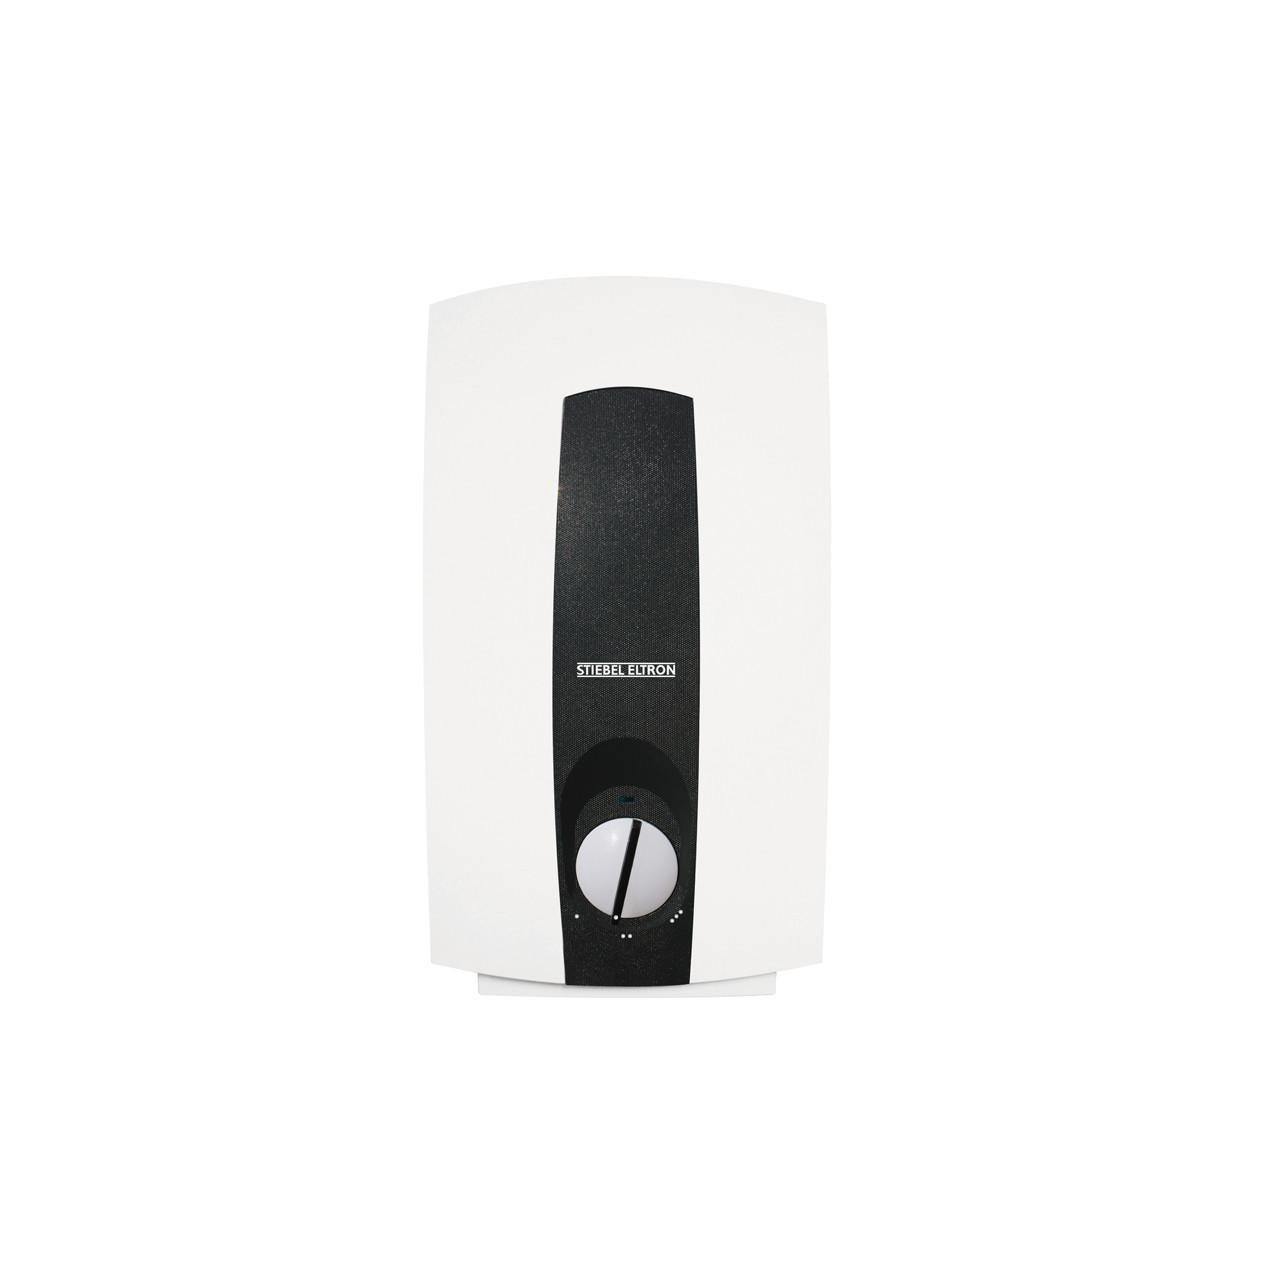 Stiebel Eltron DHCE 8/60 Single Phase Electric Instantaneous Water Heater 9.5kW 60°C Max